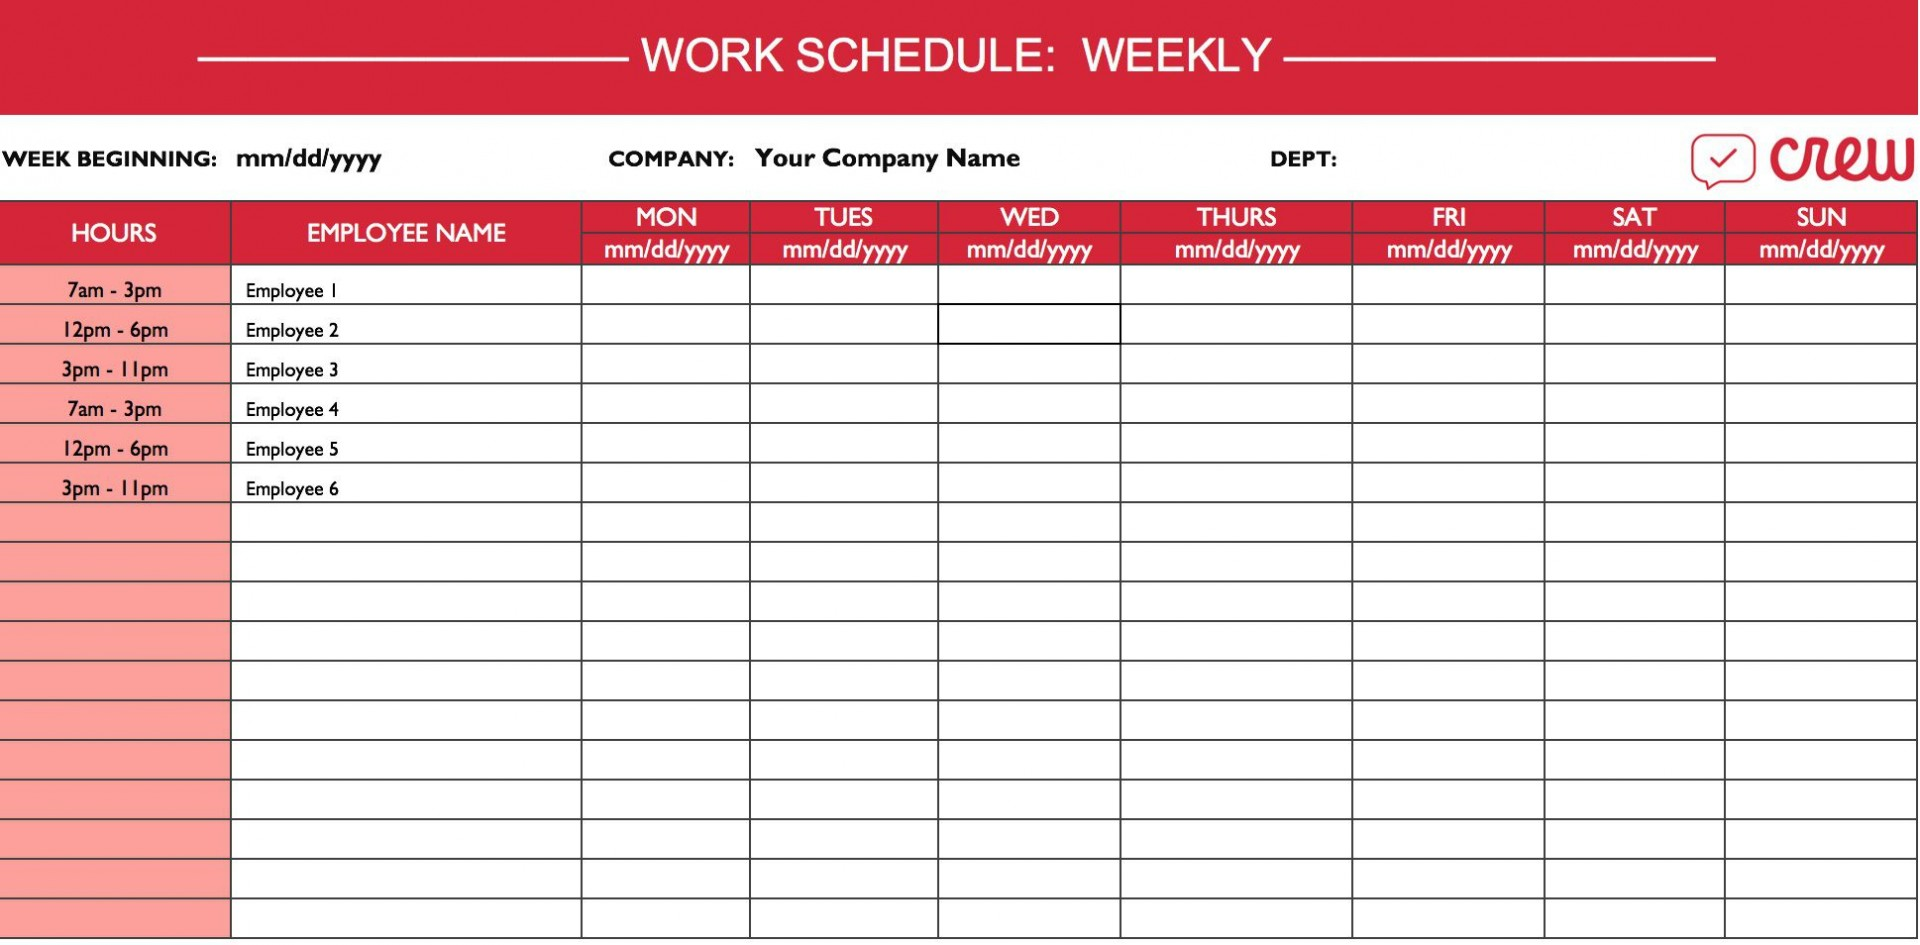 008 Amazing Weekly Work Schedule Template Highest Quality  Pdf Free Excel1920